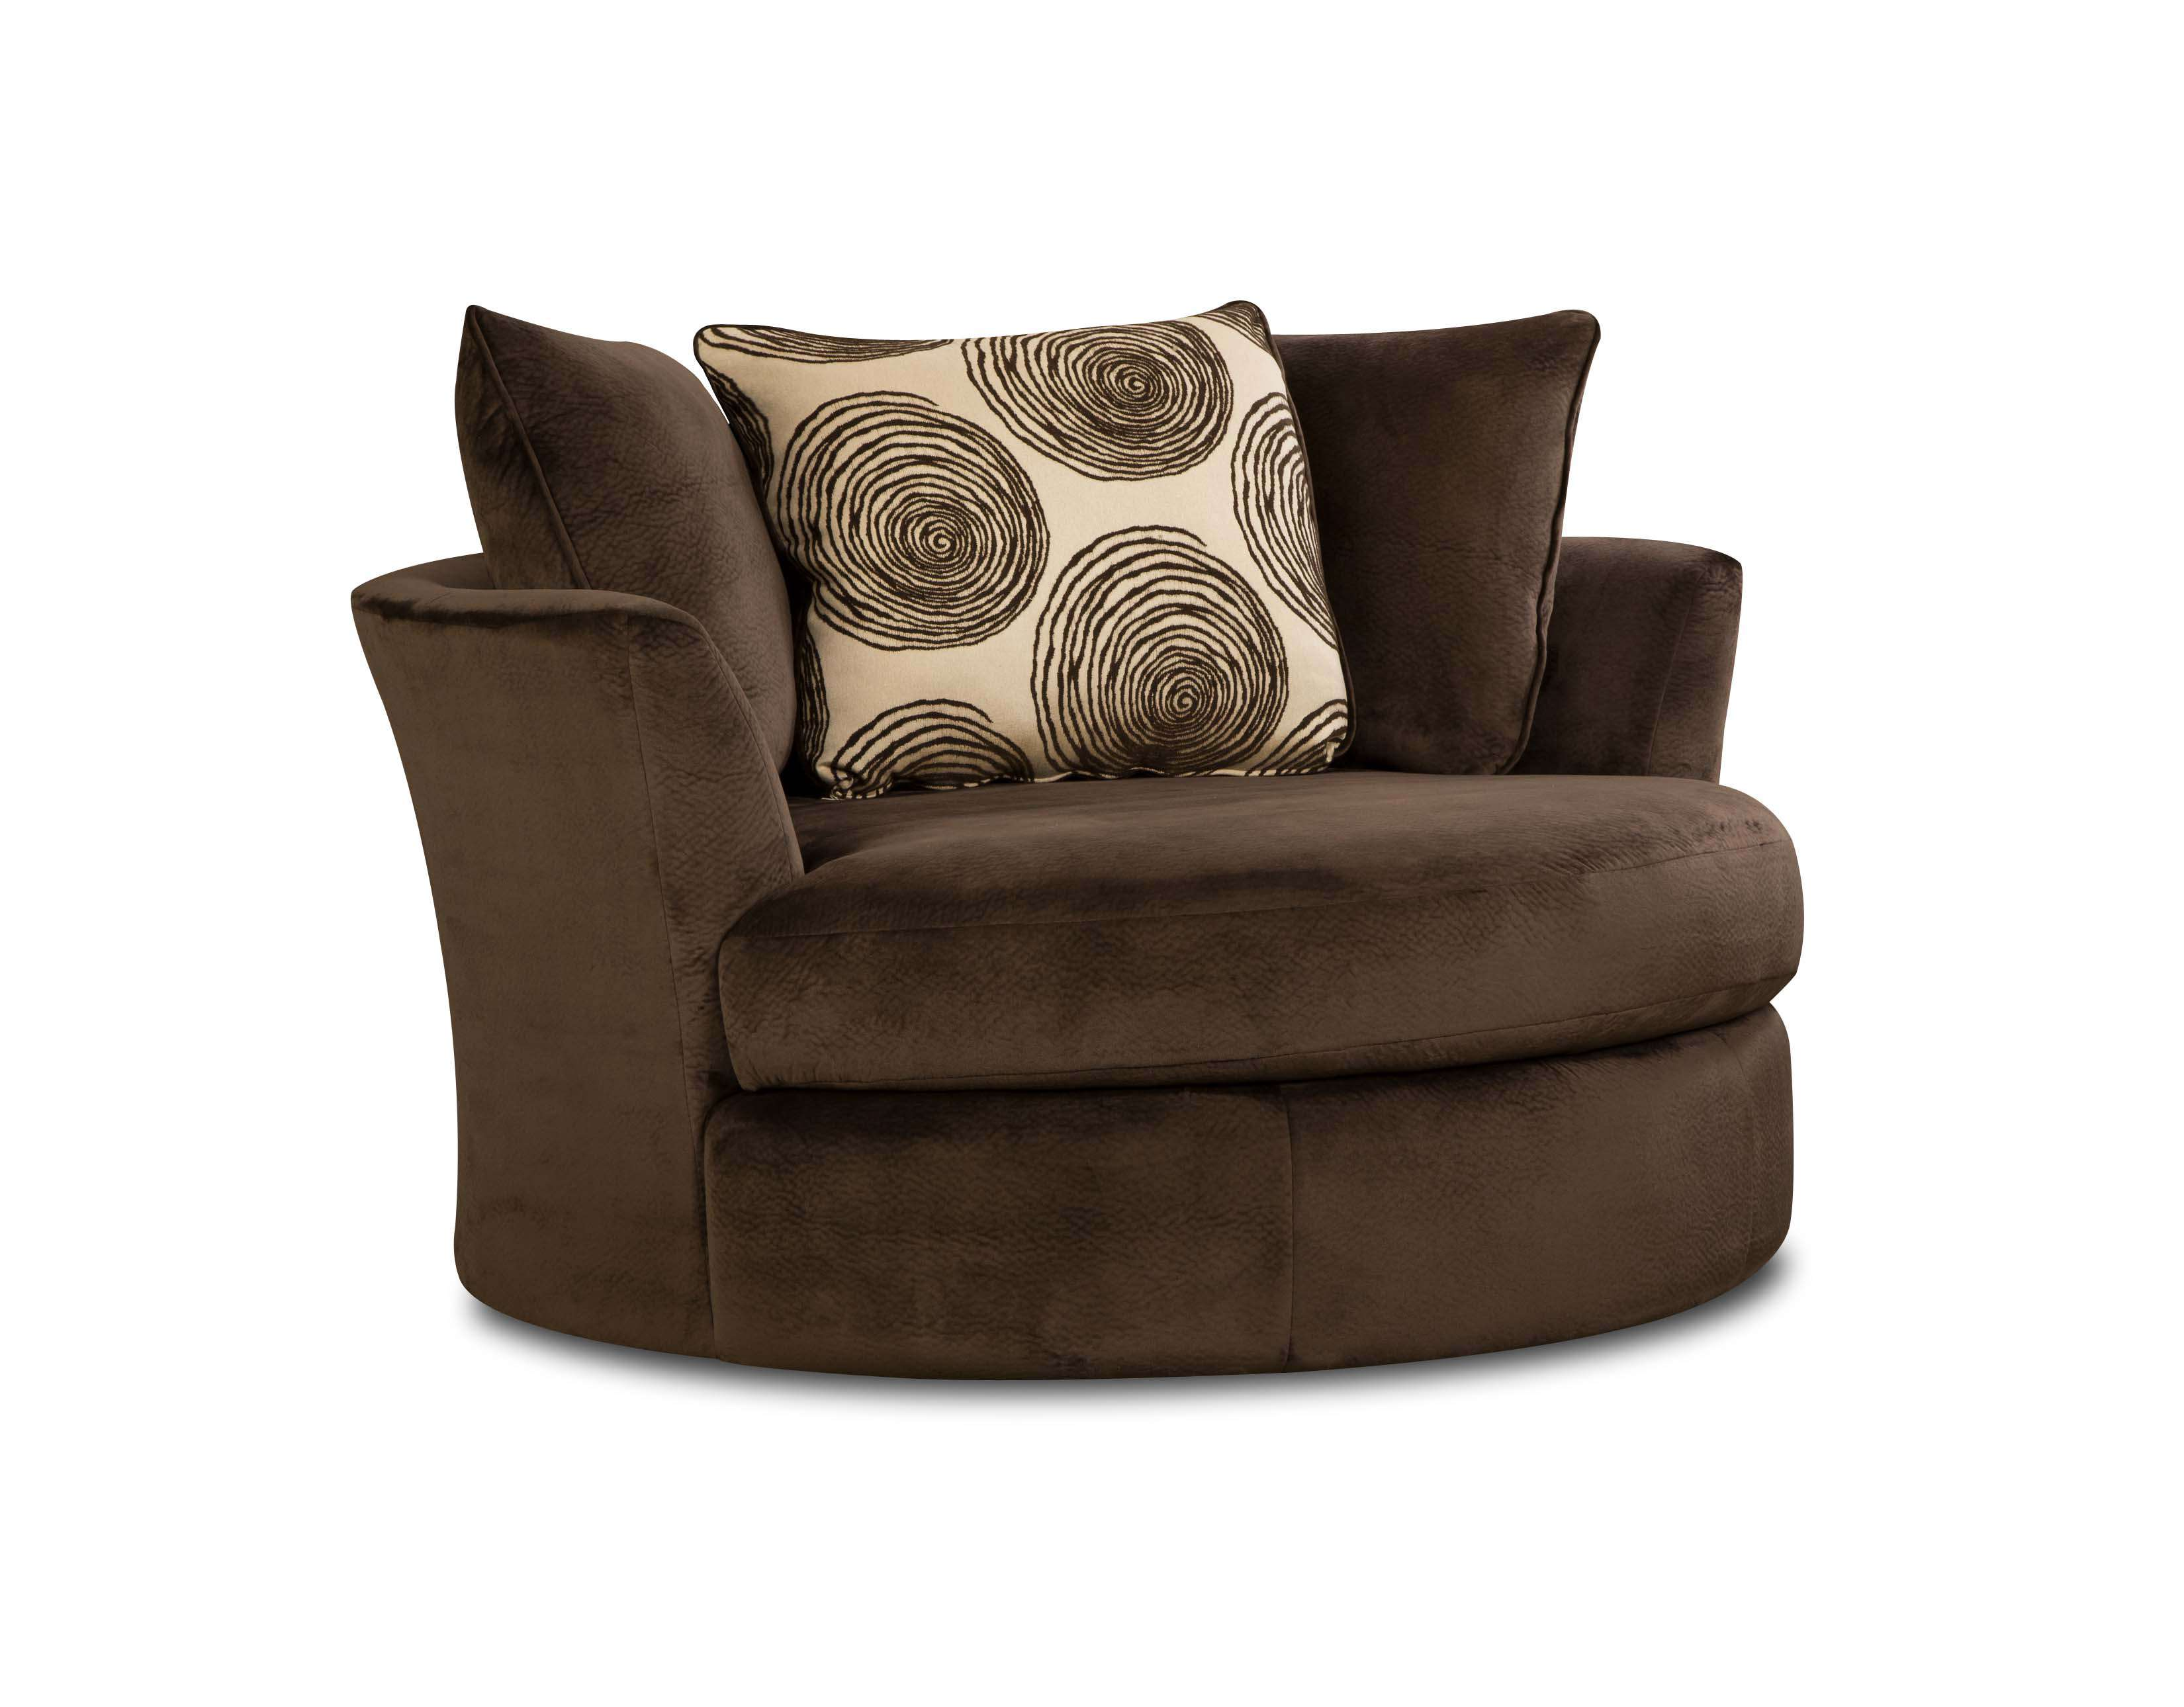 Peachy Chelsea Home Rayna Groovy Chocolate Swivel Chair With Big Swirl Chocolate Pillow Reviews Goedekers Com Bralicious Painted Fabric Chair Ideas Braliciousco